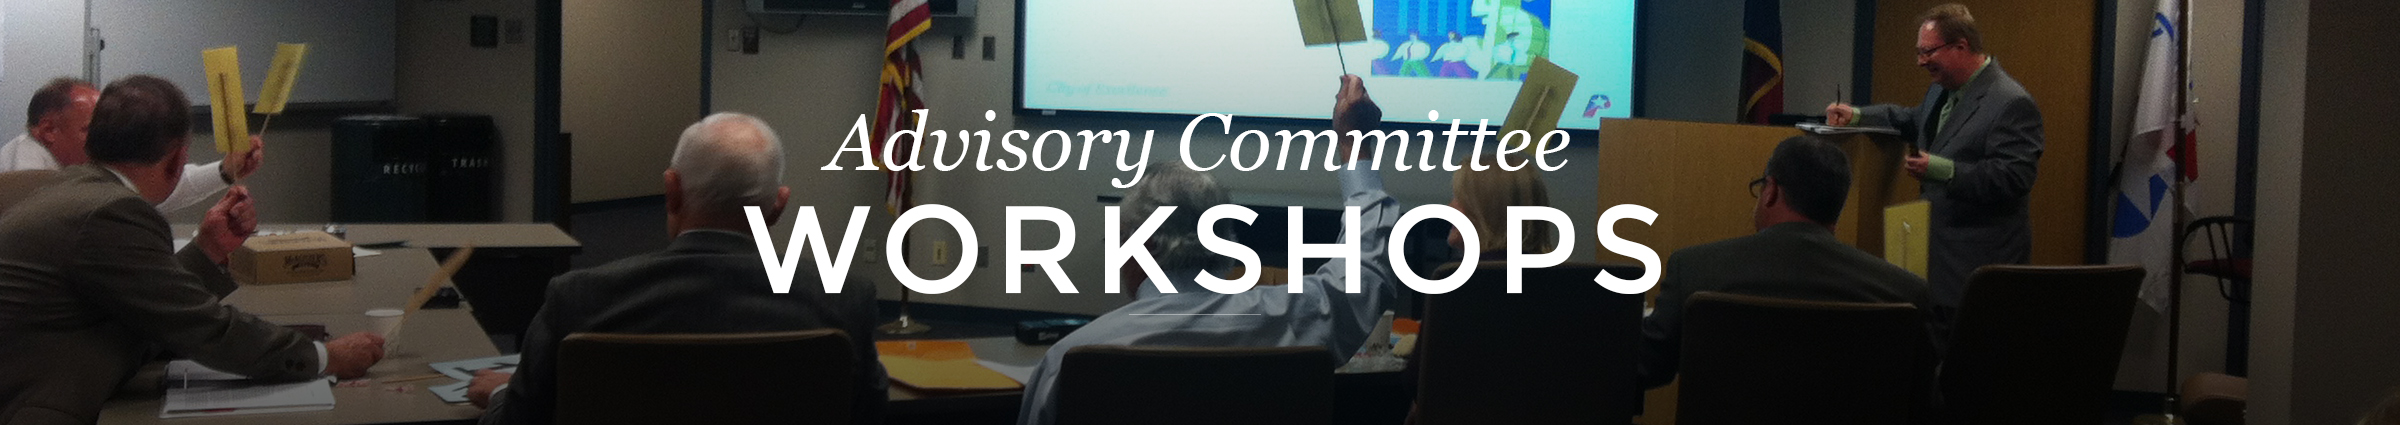 Advisory Committee Workshops